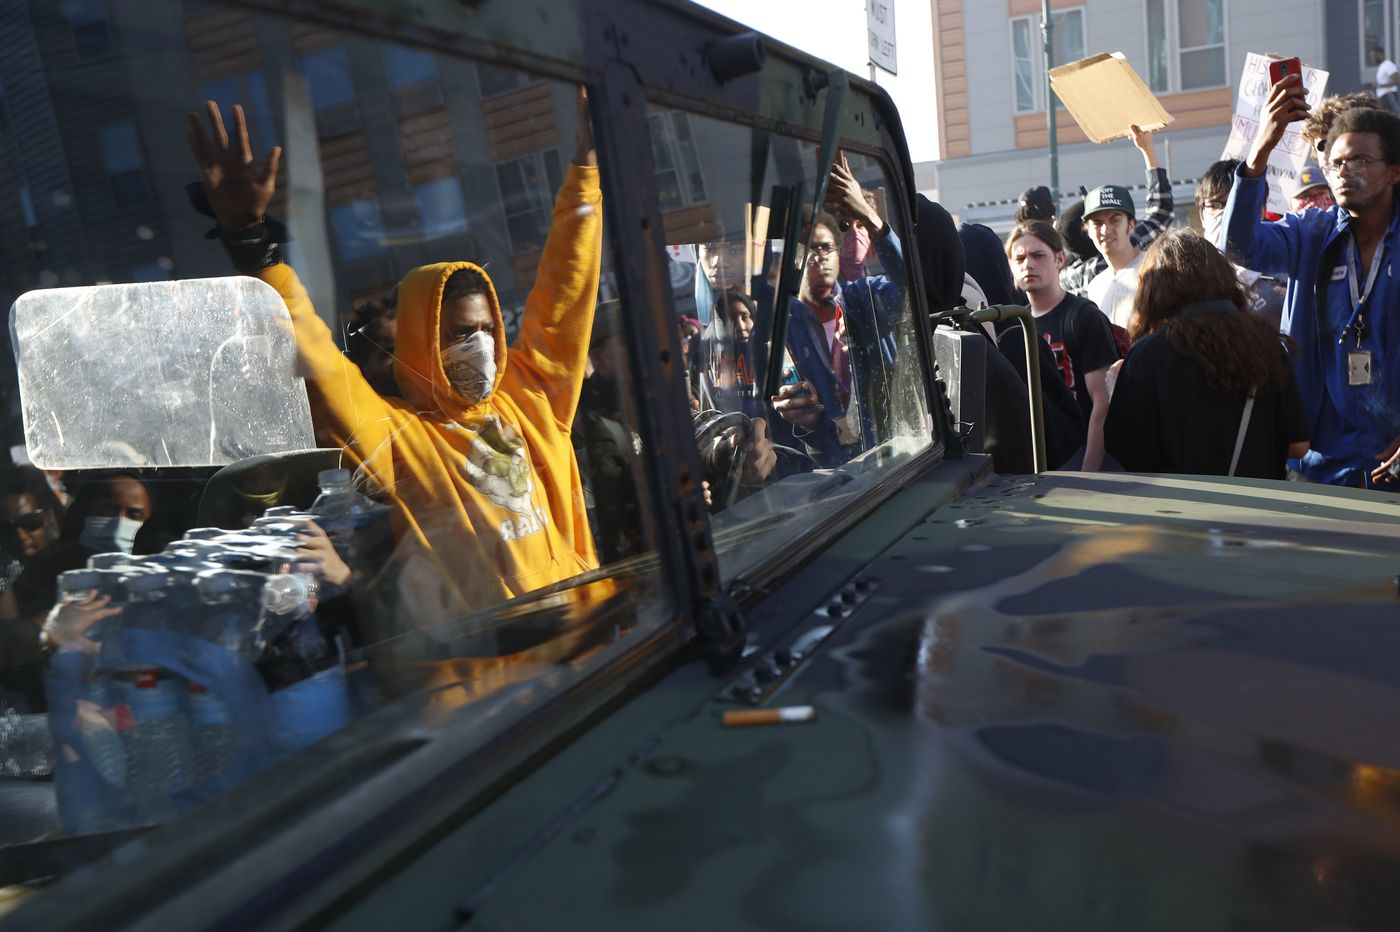 Police turn more aggressive against protesters and bystanders nationwide, adding to violence and chaos